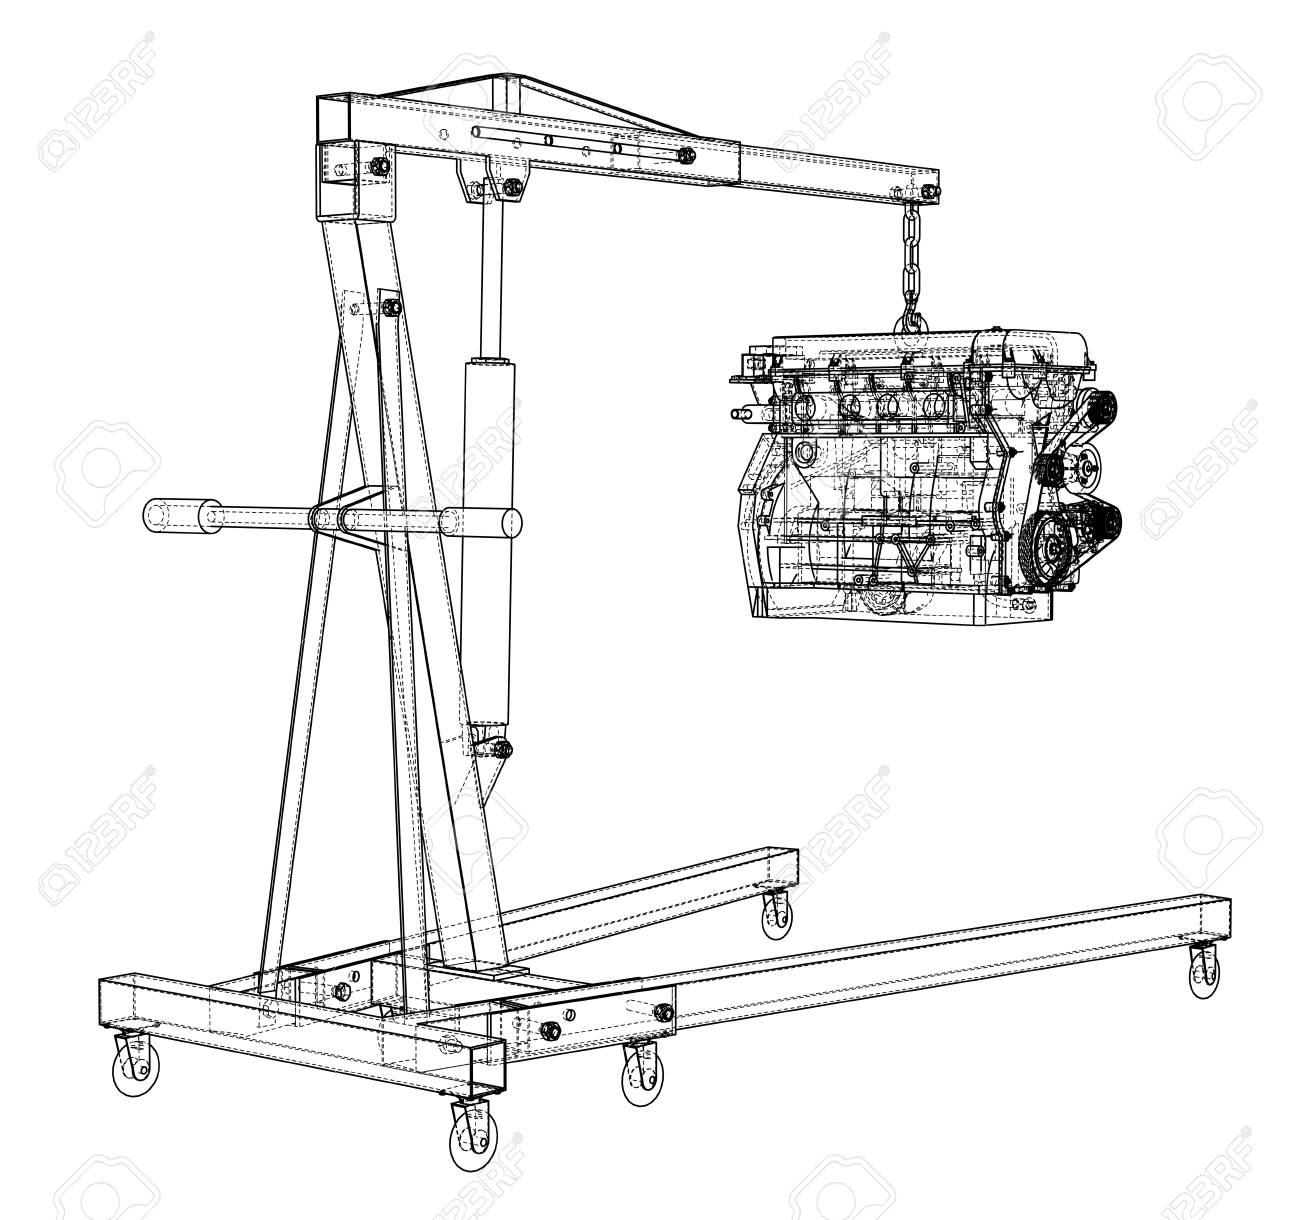 Engine Hoist With Engine Outline Stock Photo, Picture And Royalty Free  Image. Image 118620197.123RF.com